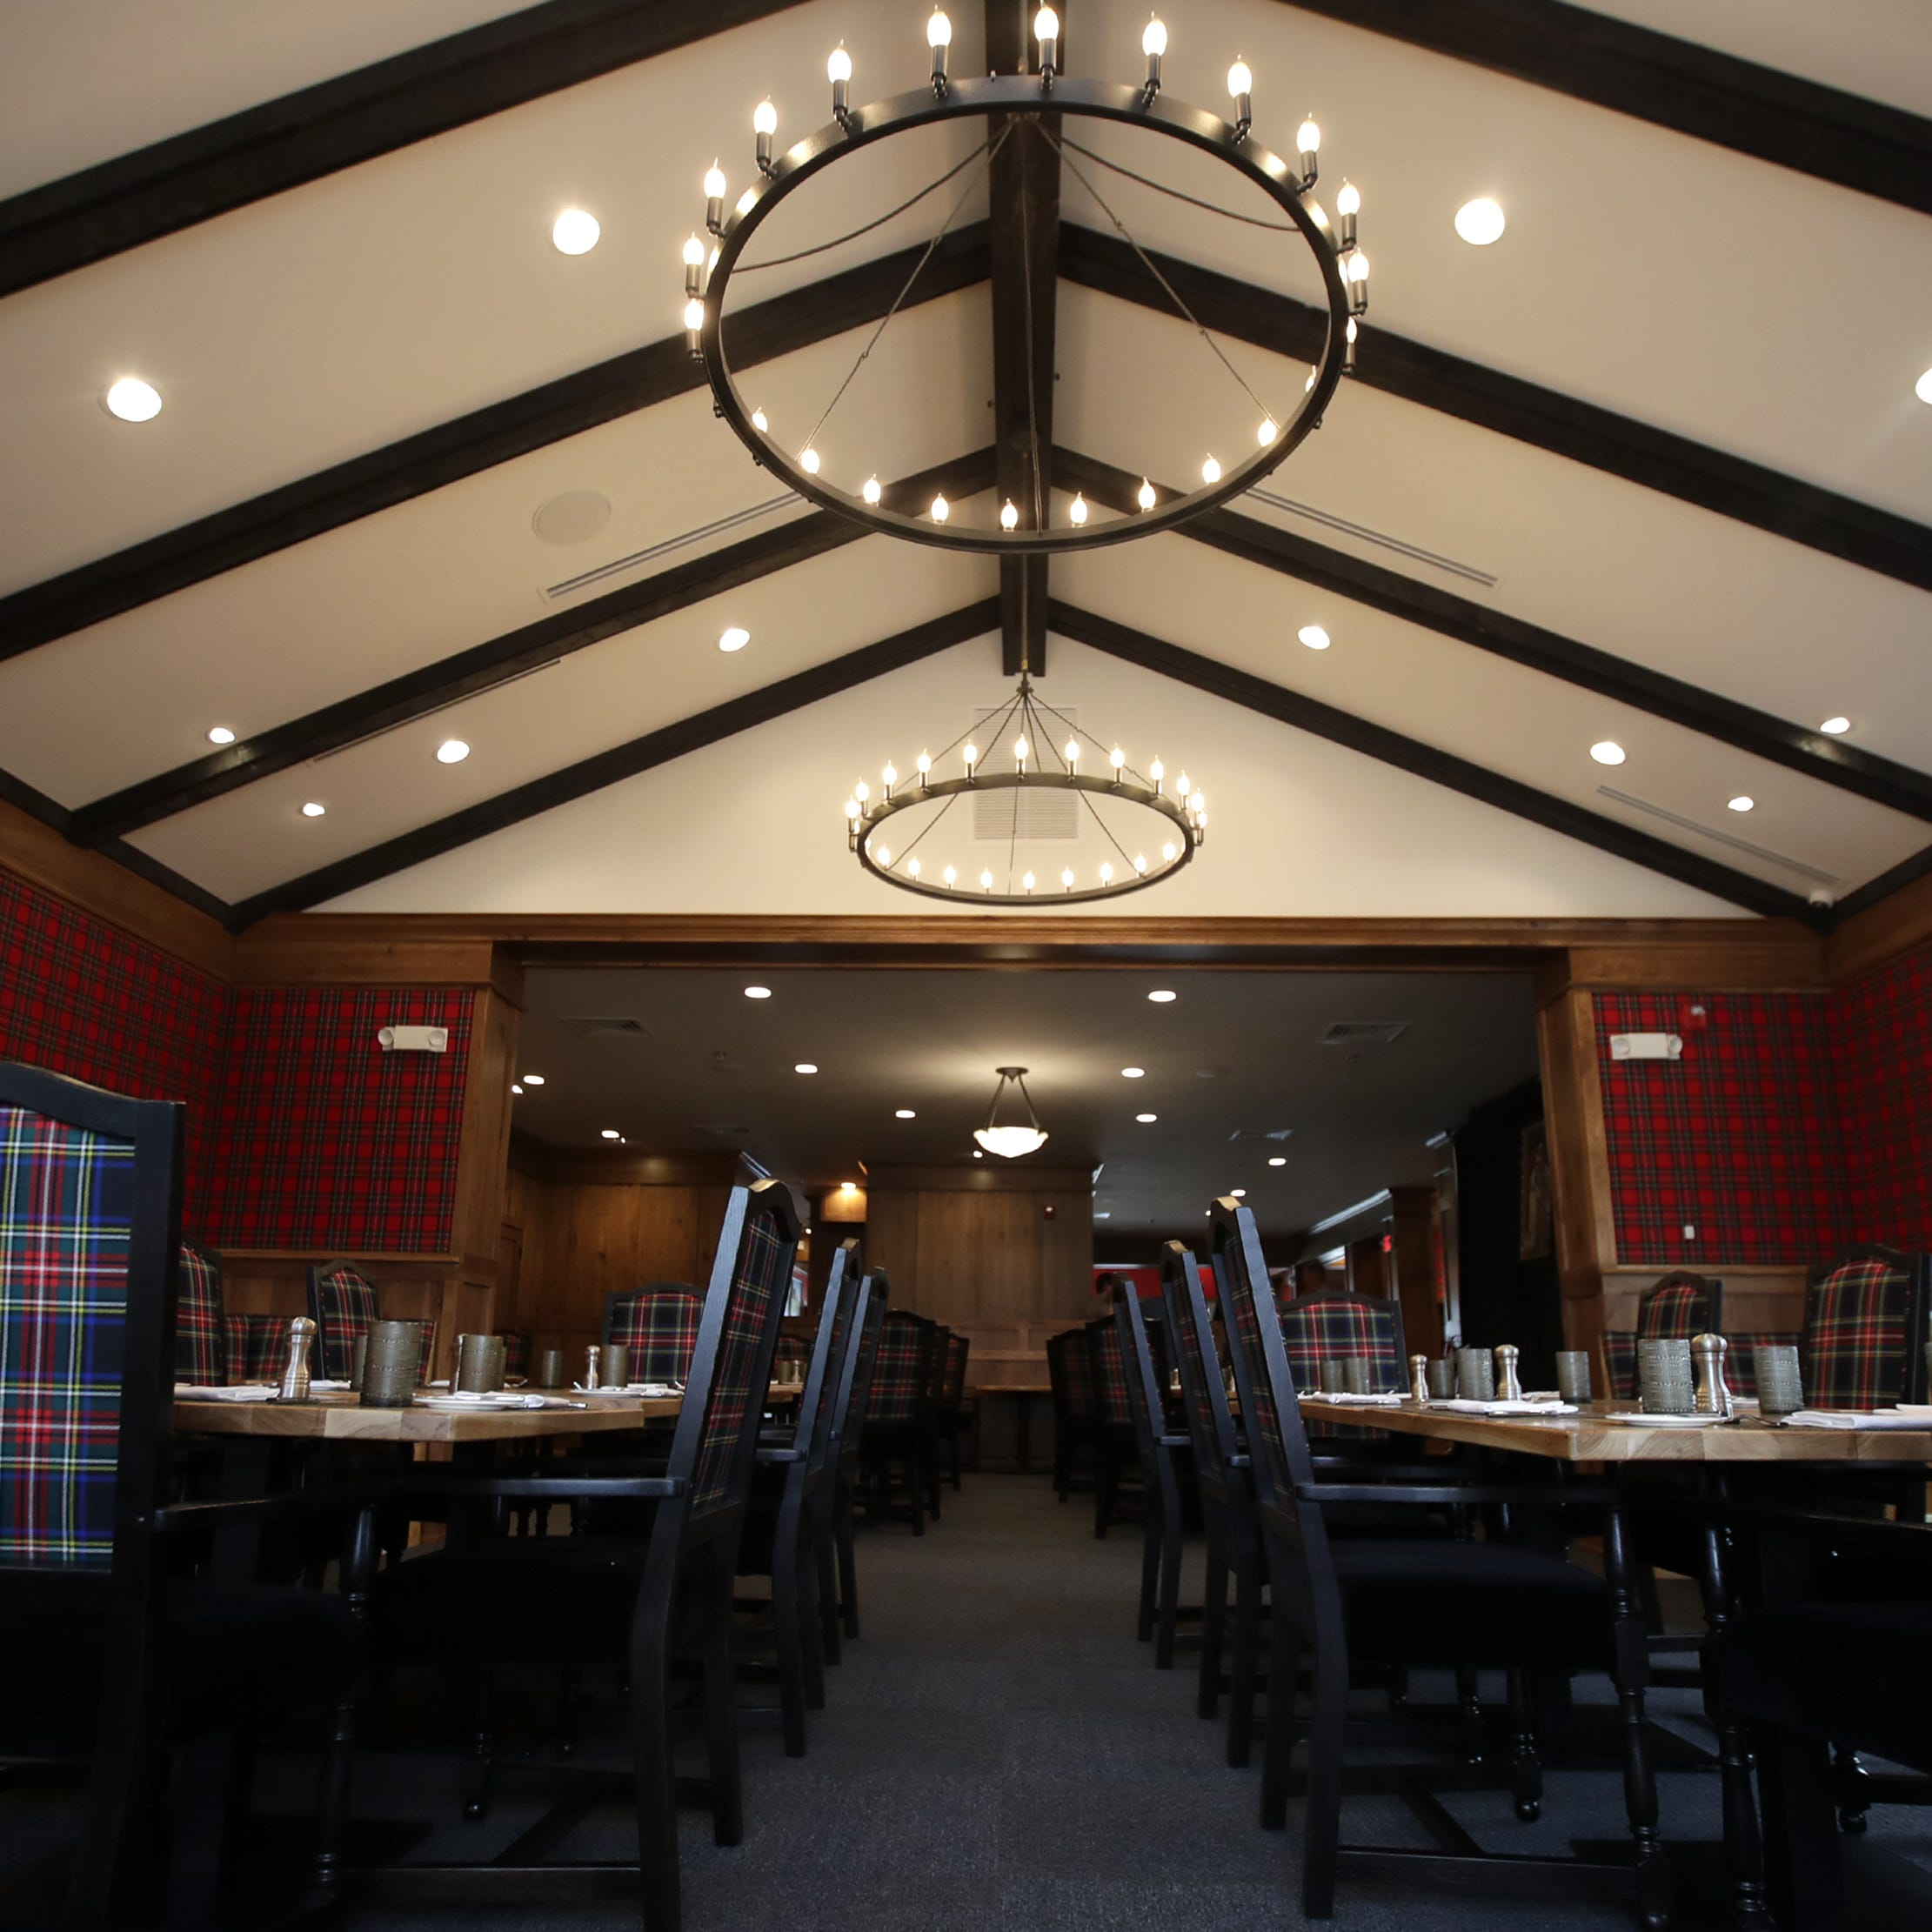 TJ's Highland Steakhouse brings plaid, Scotch and fine dining to Oshkosh | Streetwise